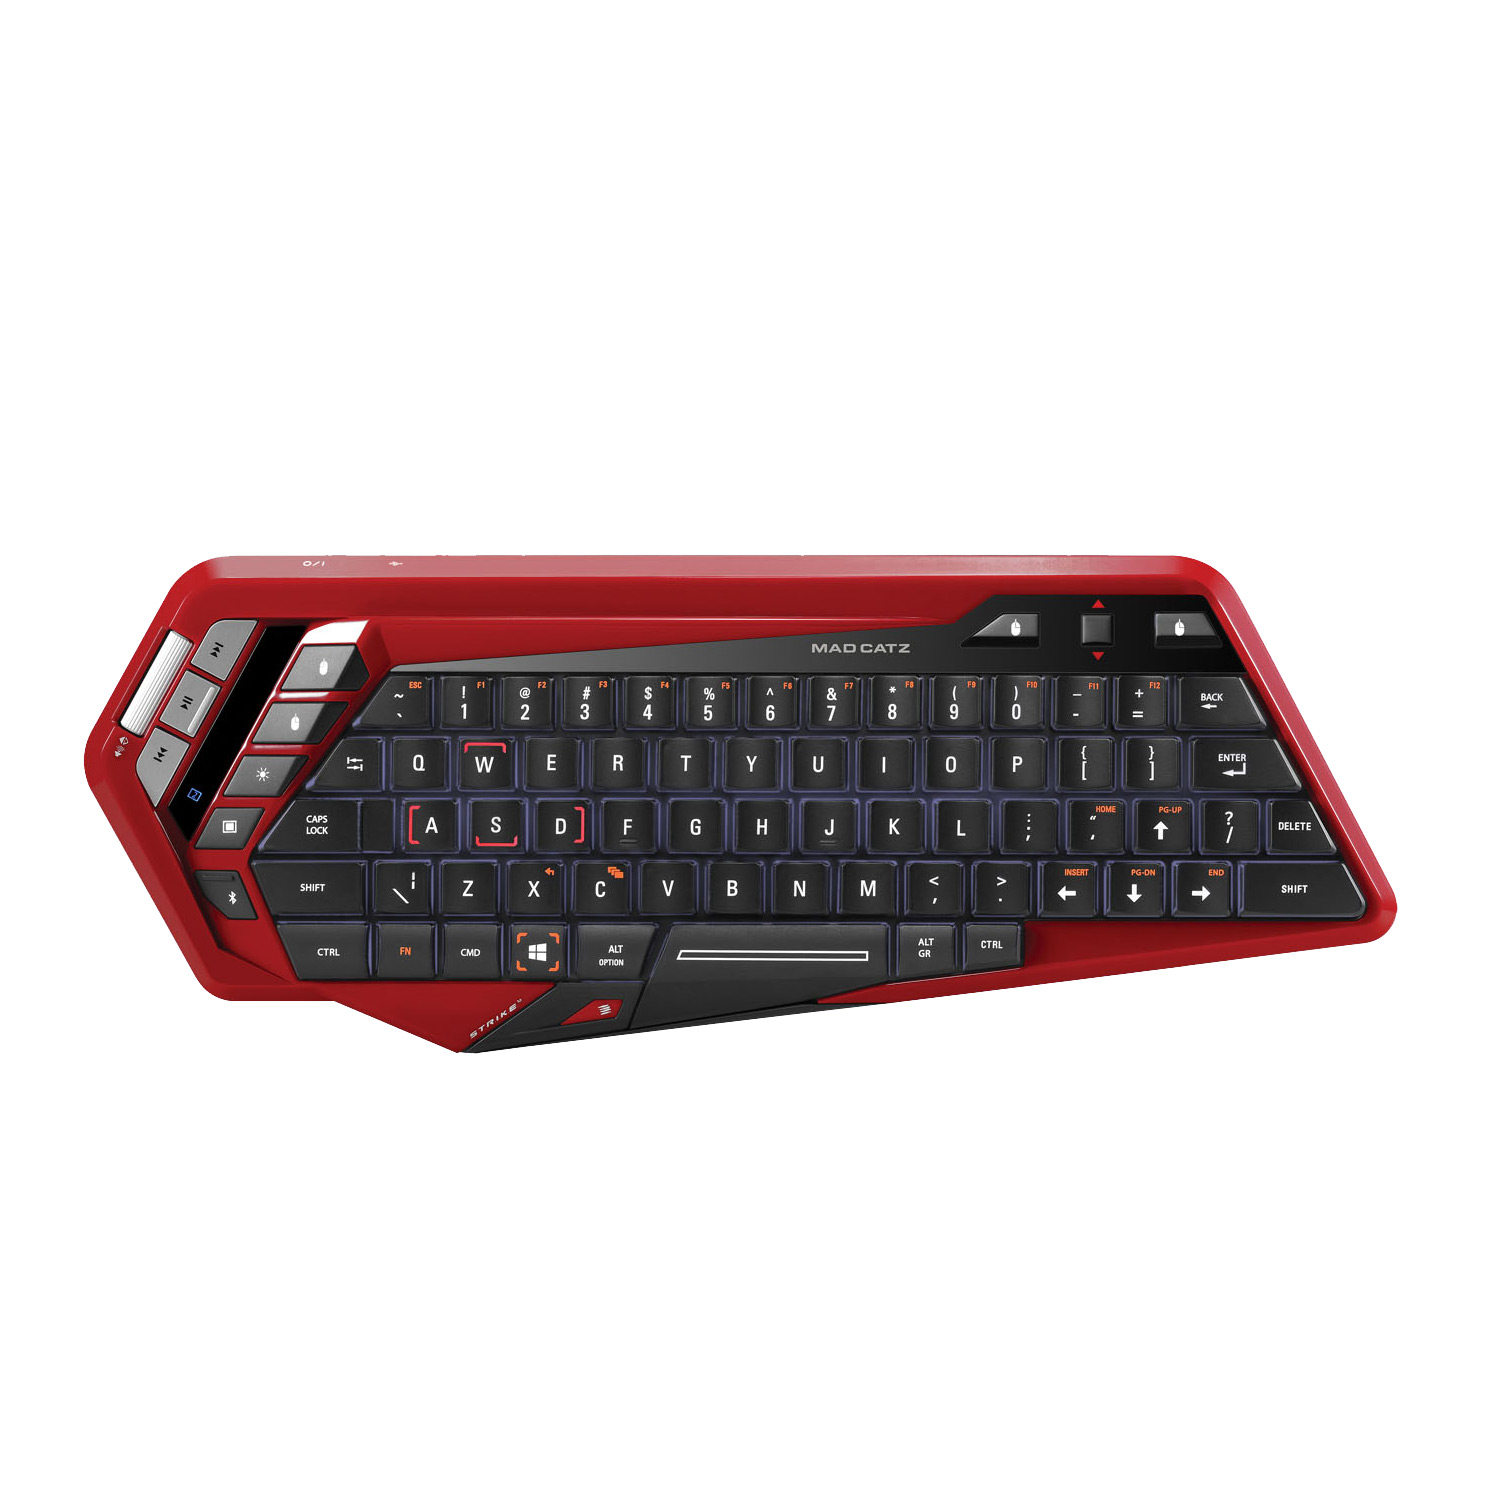 mad catz s t r i k e m strike m red clavier pc mad. Black Bedroom Furniture Sets. Home Design Ideas